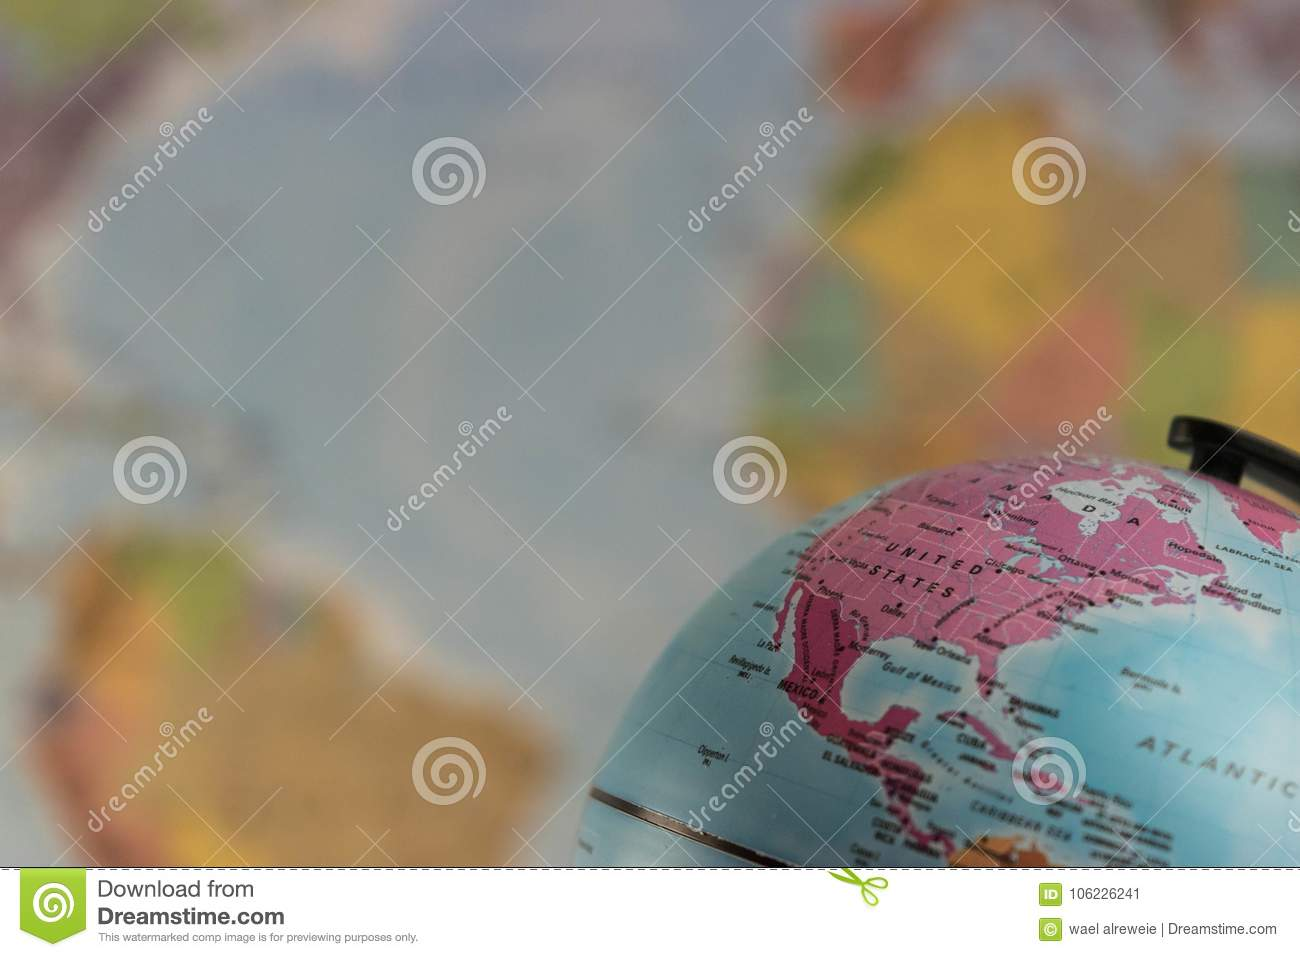 Us Map Globe.The United States Of America On The Map Globe With Blurred Map As